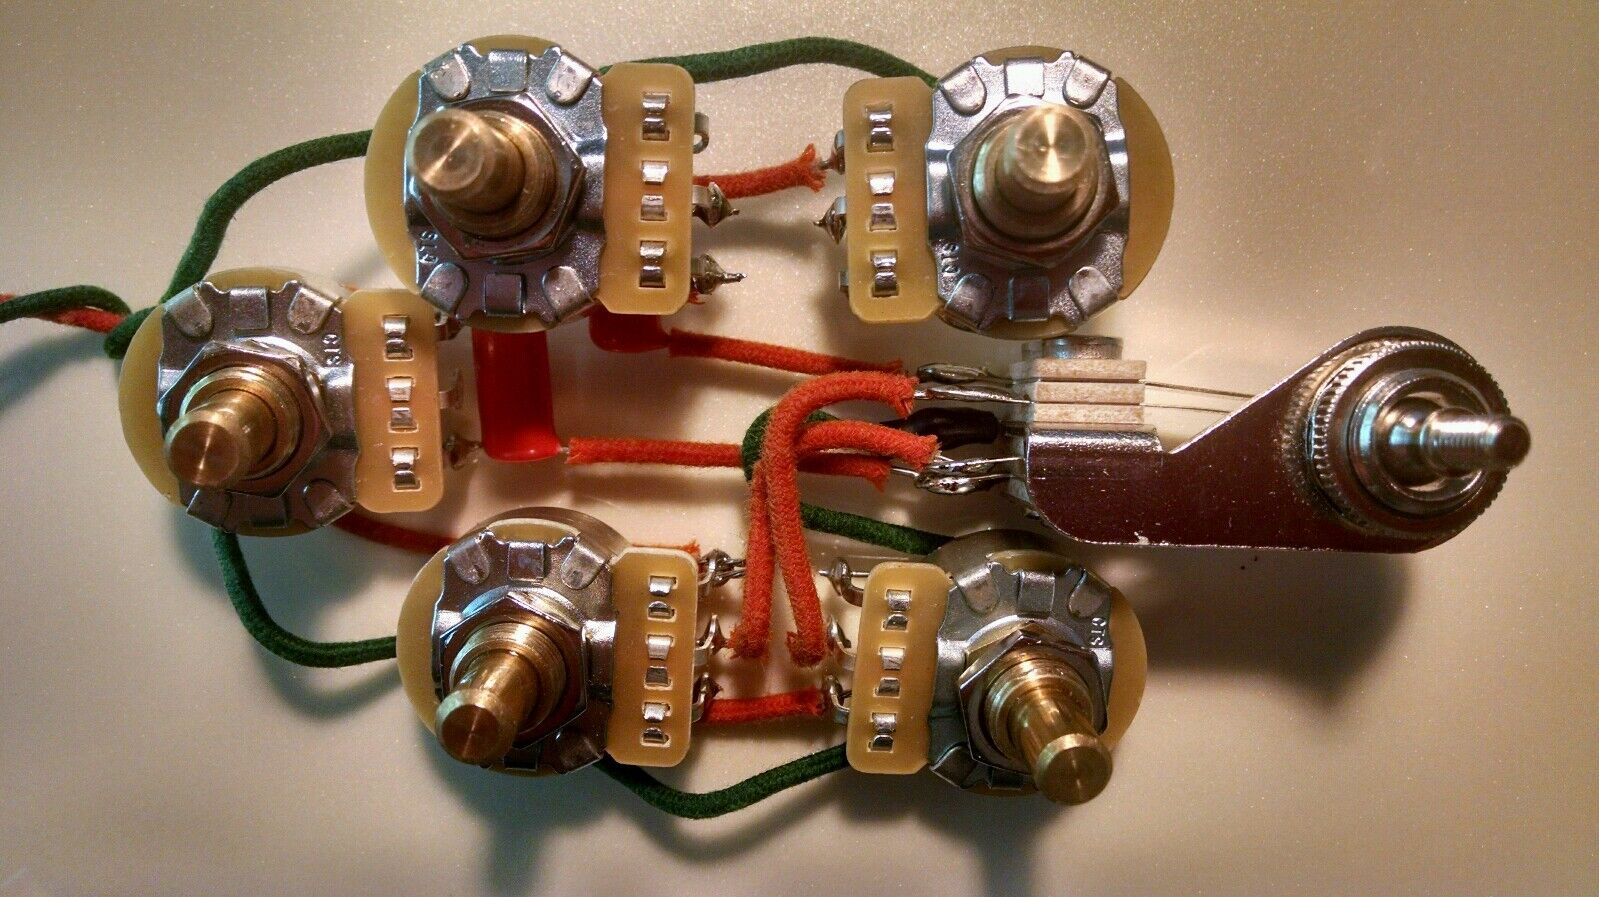 rickenbacker 340 370 350sh 3 guitar 5 wiring harness mono 163 77 35 picclick uk